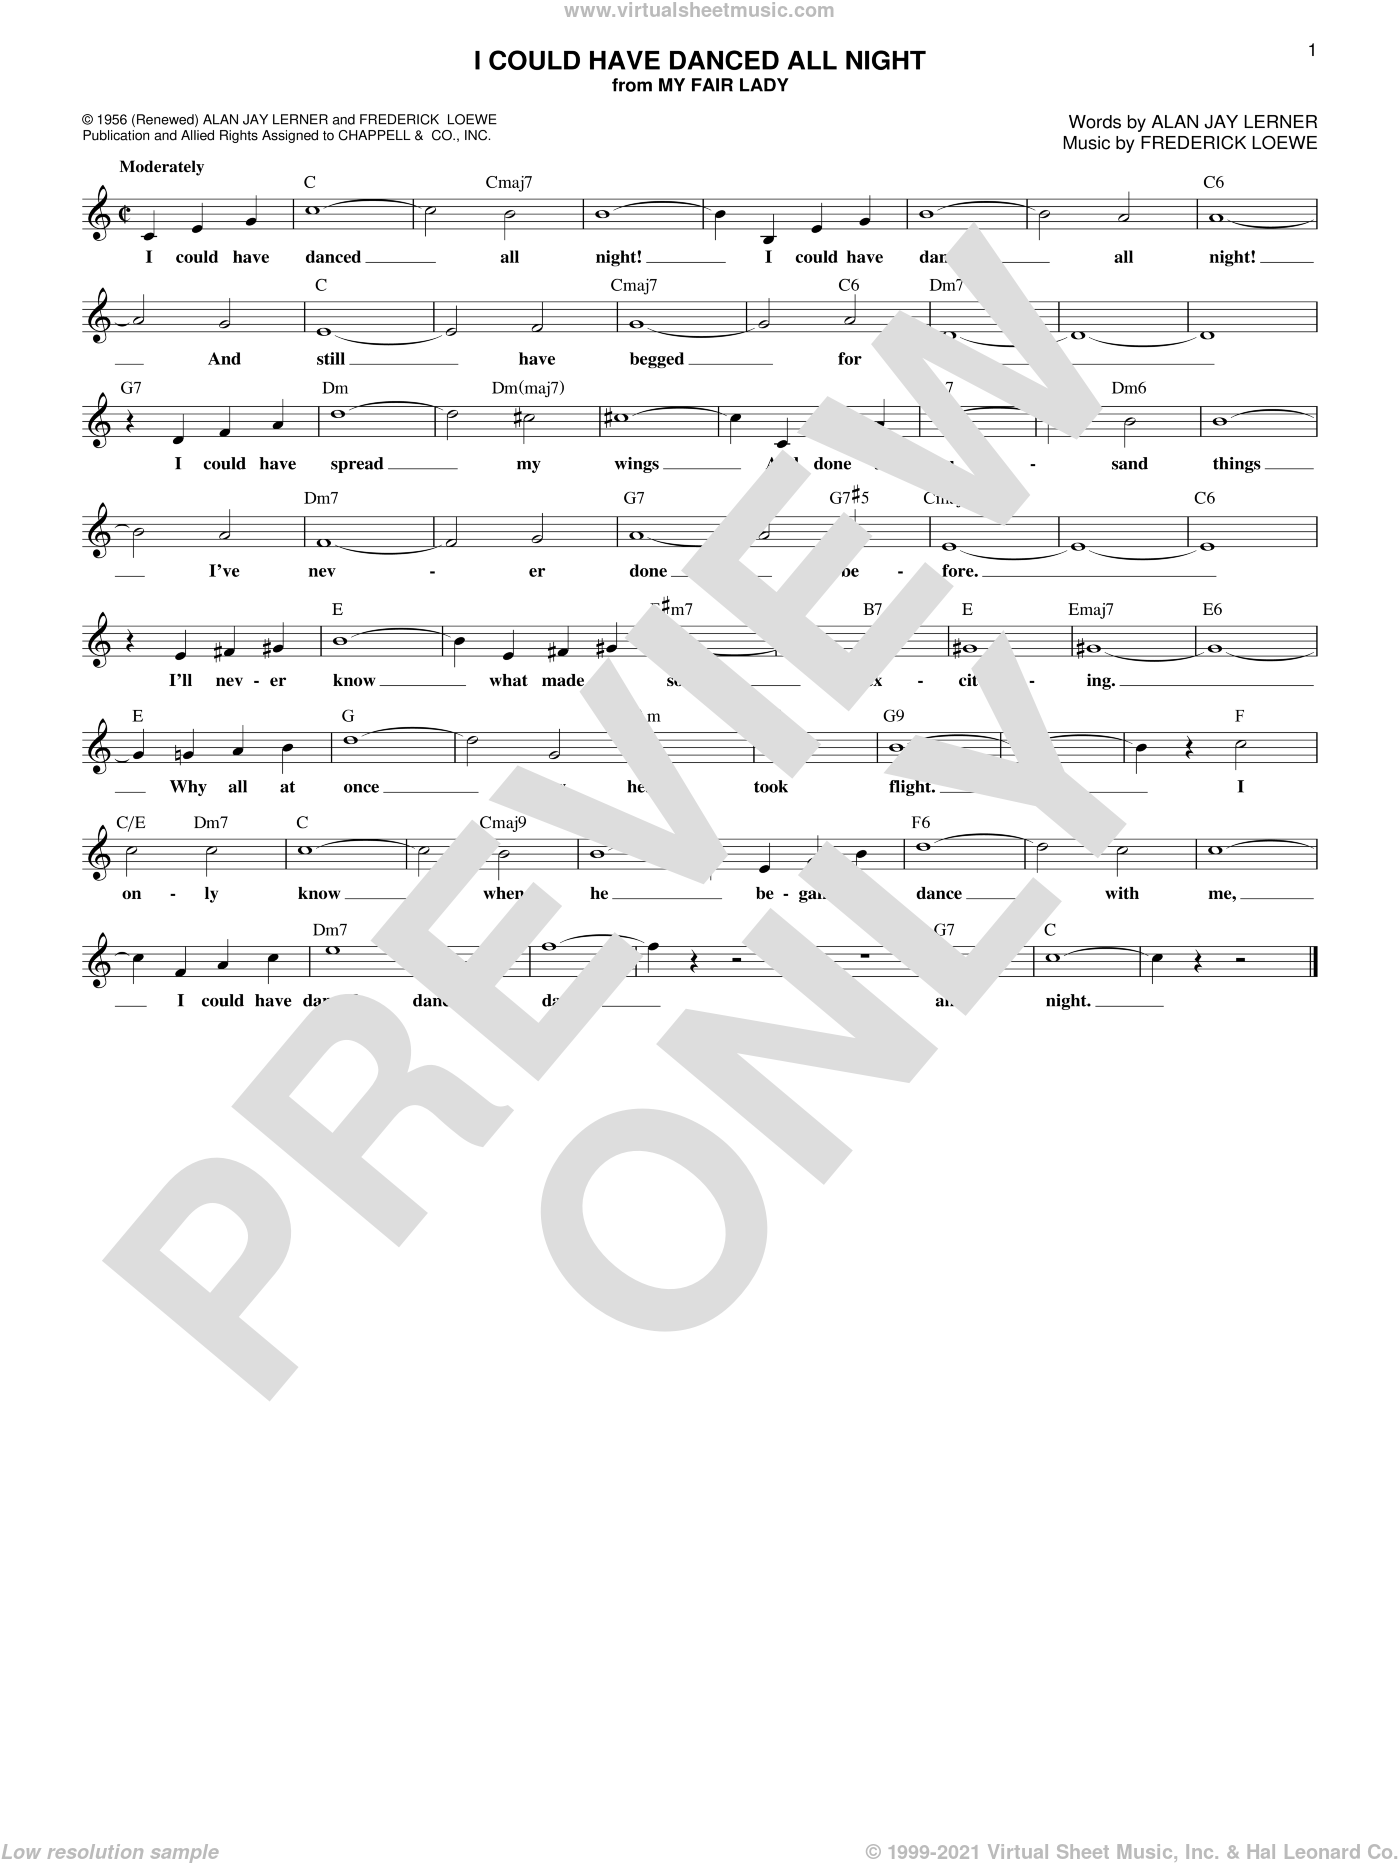 I Could Have Danced All Night sheet music for voice and other instruments (fake book) by Alan Jay Lerner and Frederick Loewe, intermediate skill level